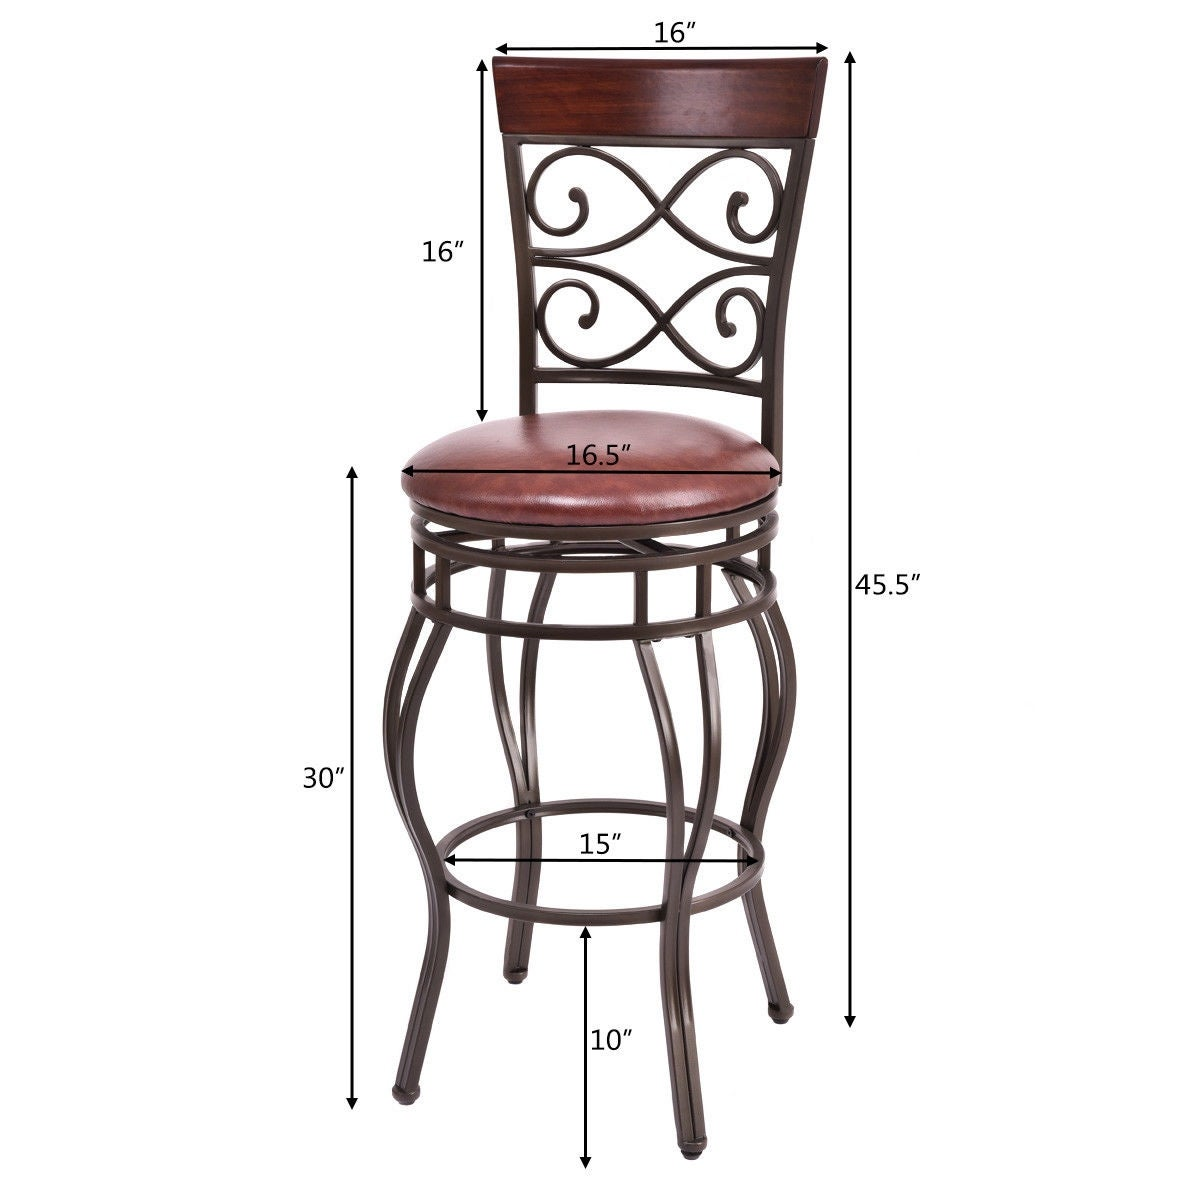 Admirable Costway Set Of 2 Vintage Bar Stools Swivel Padded Seat Bistro Dining Kitchen Pub Chair As Pic Andrewgaddart Wooden Chair Designs For Living Room Andrewgaddartcom